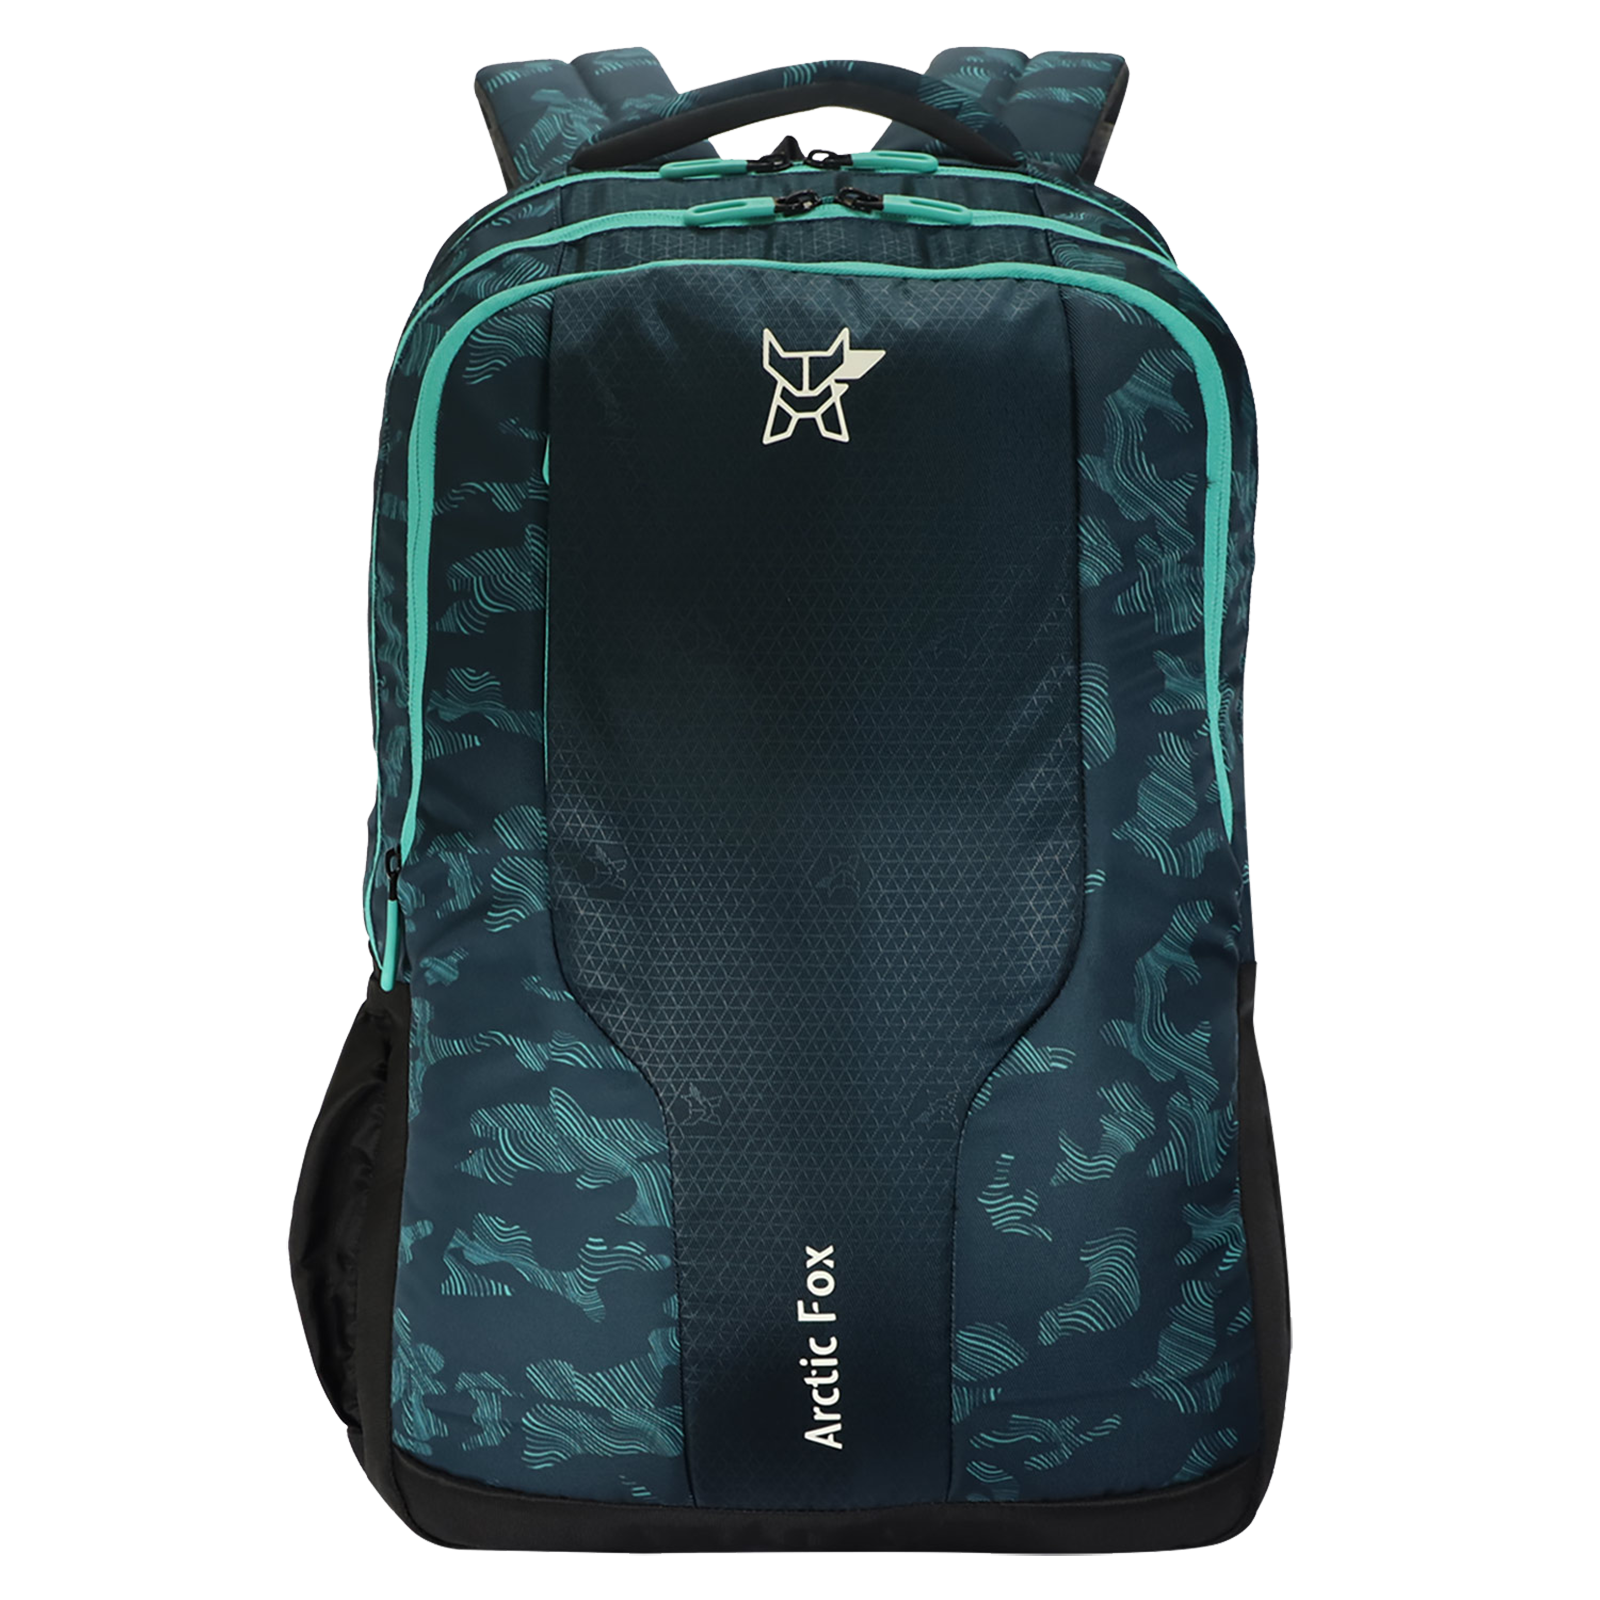 Arctic Fox Tribe 37 Litres PU Coated Polyester Backpack (2 Spacious Compartments, FTEBPKATLON075037, Atlantis)_1